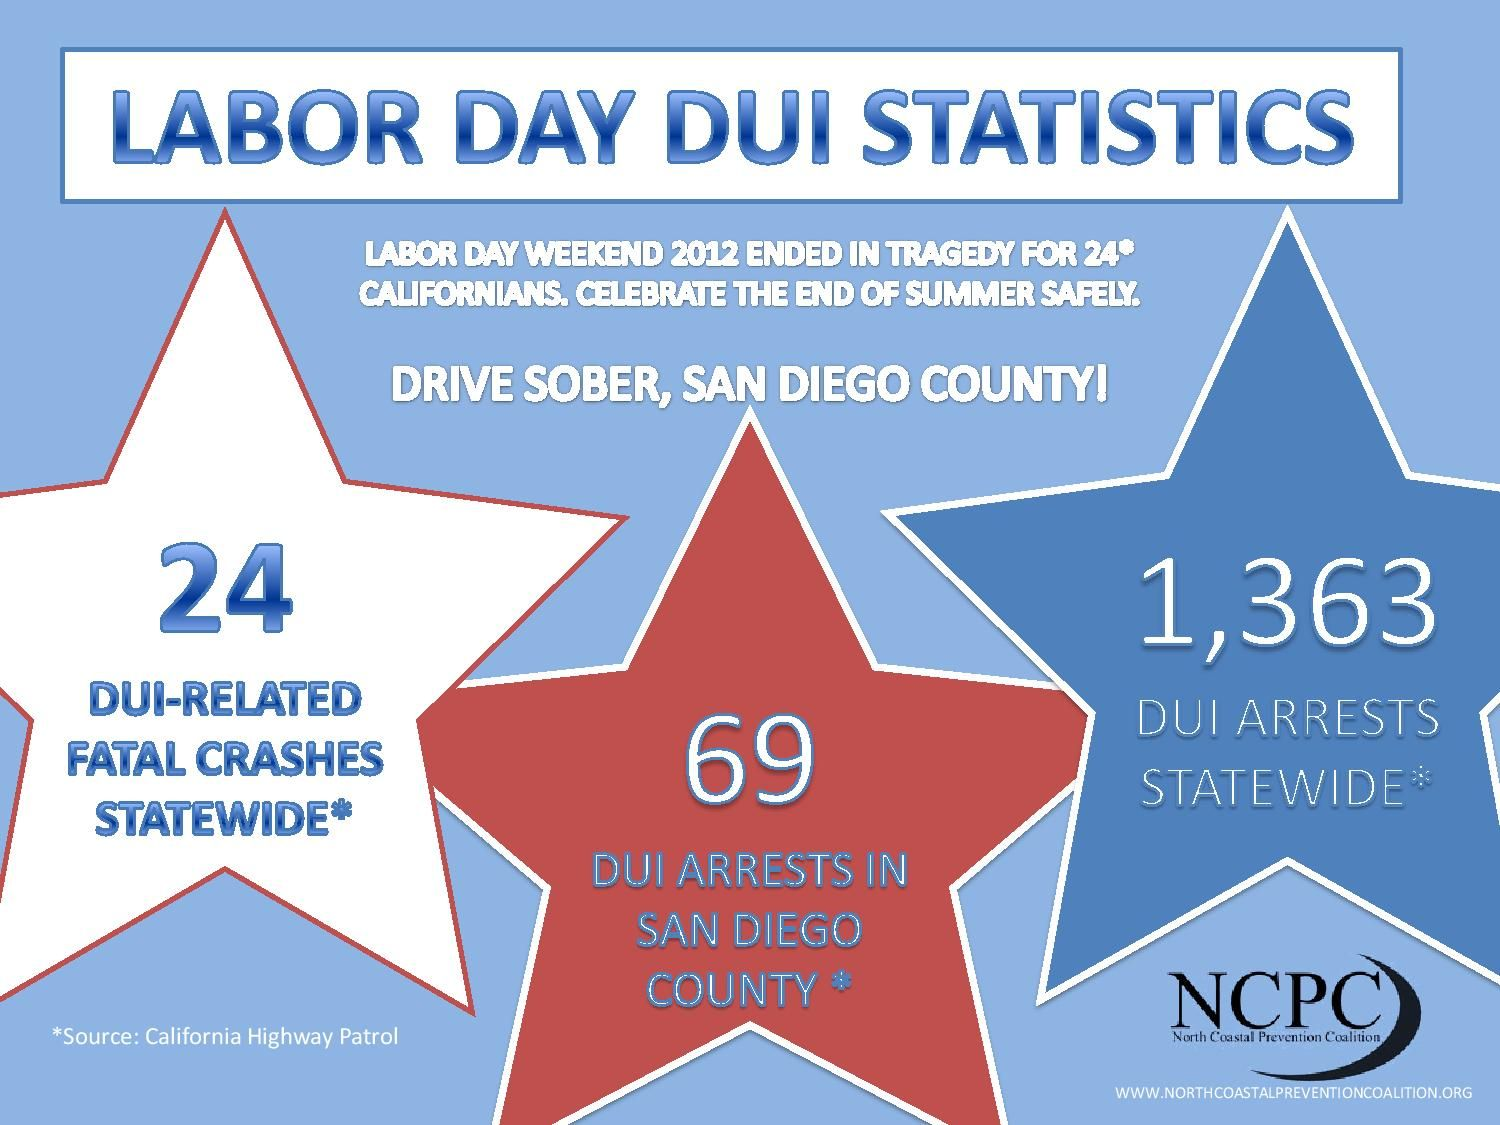 infographic Labor Day DUI Statistics Infographic, Dui